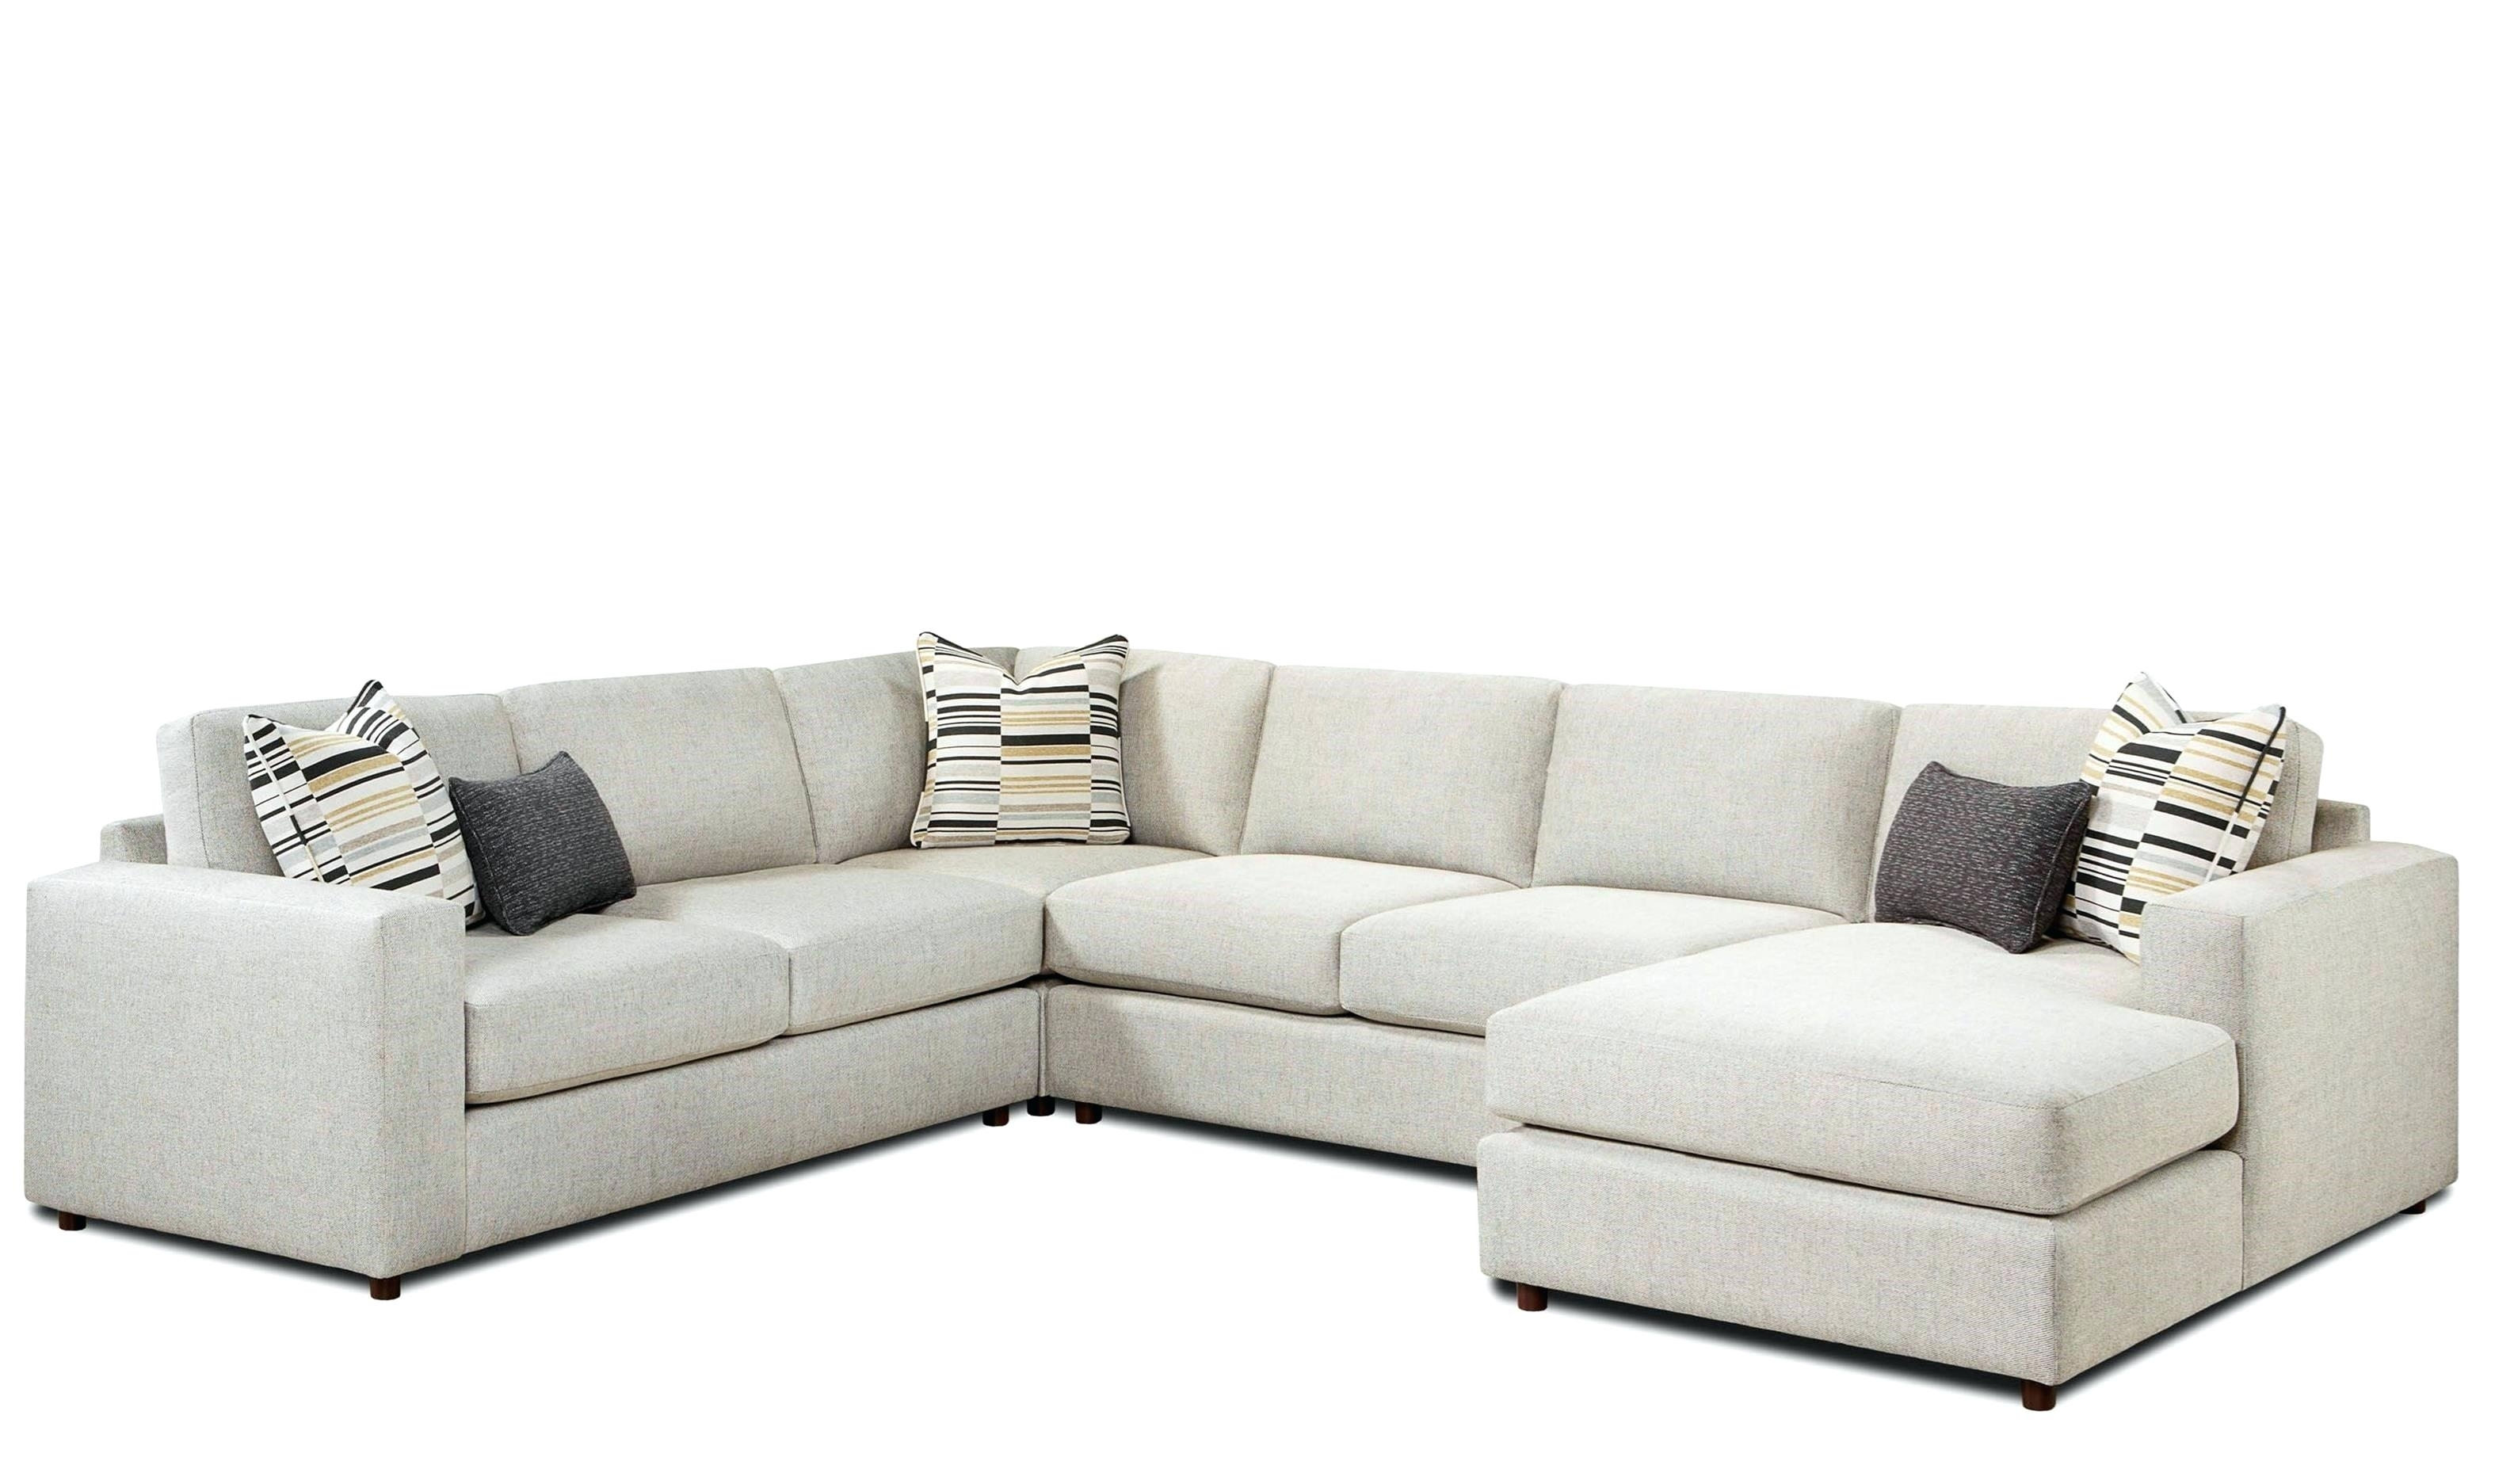 4 Piece Sectional With Chaise Fusion Furniture 4 Piece Sectional In Alder 4 Piece Sectionals (Image 1 of 25)